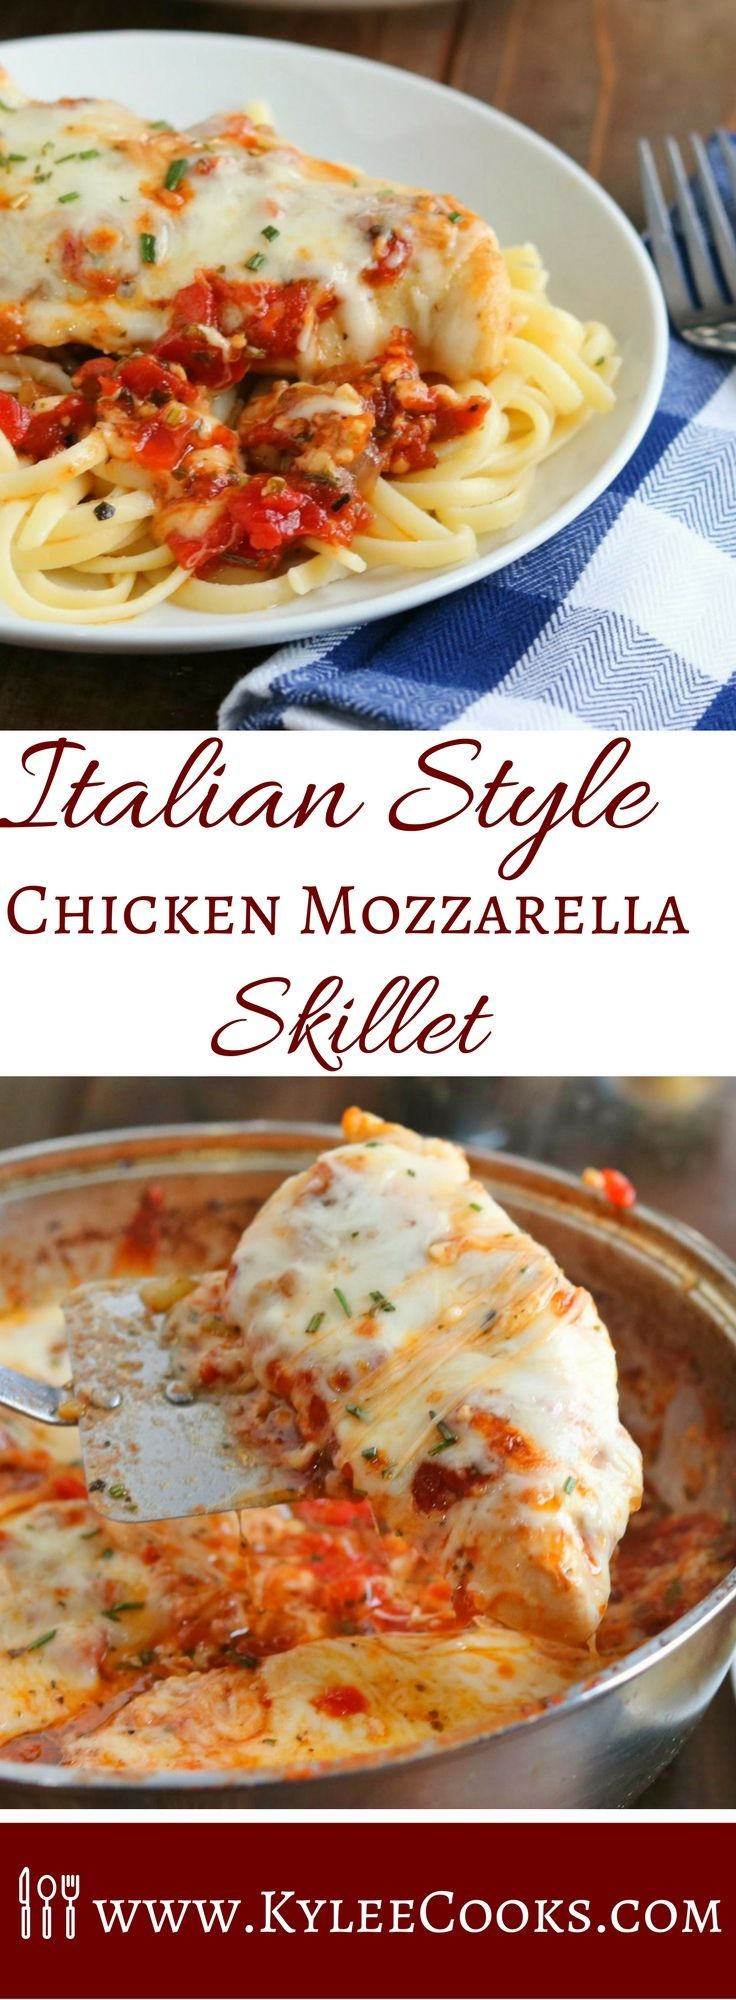 A rich, tomato based sauce made from scratch, linguine pasta, and chicken - all topped with melty mozzarella cheese. What is not to love? (Nothing. The answer is NOTHING).